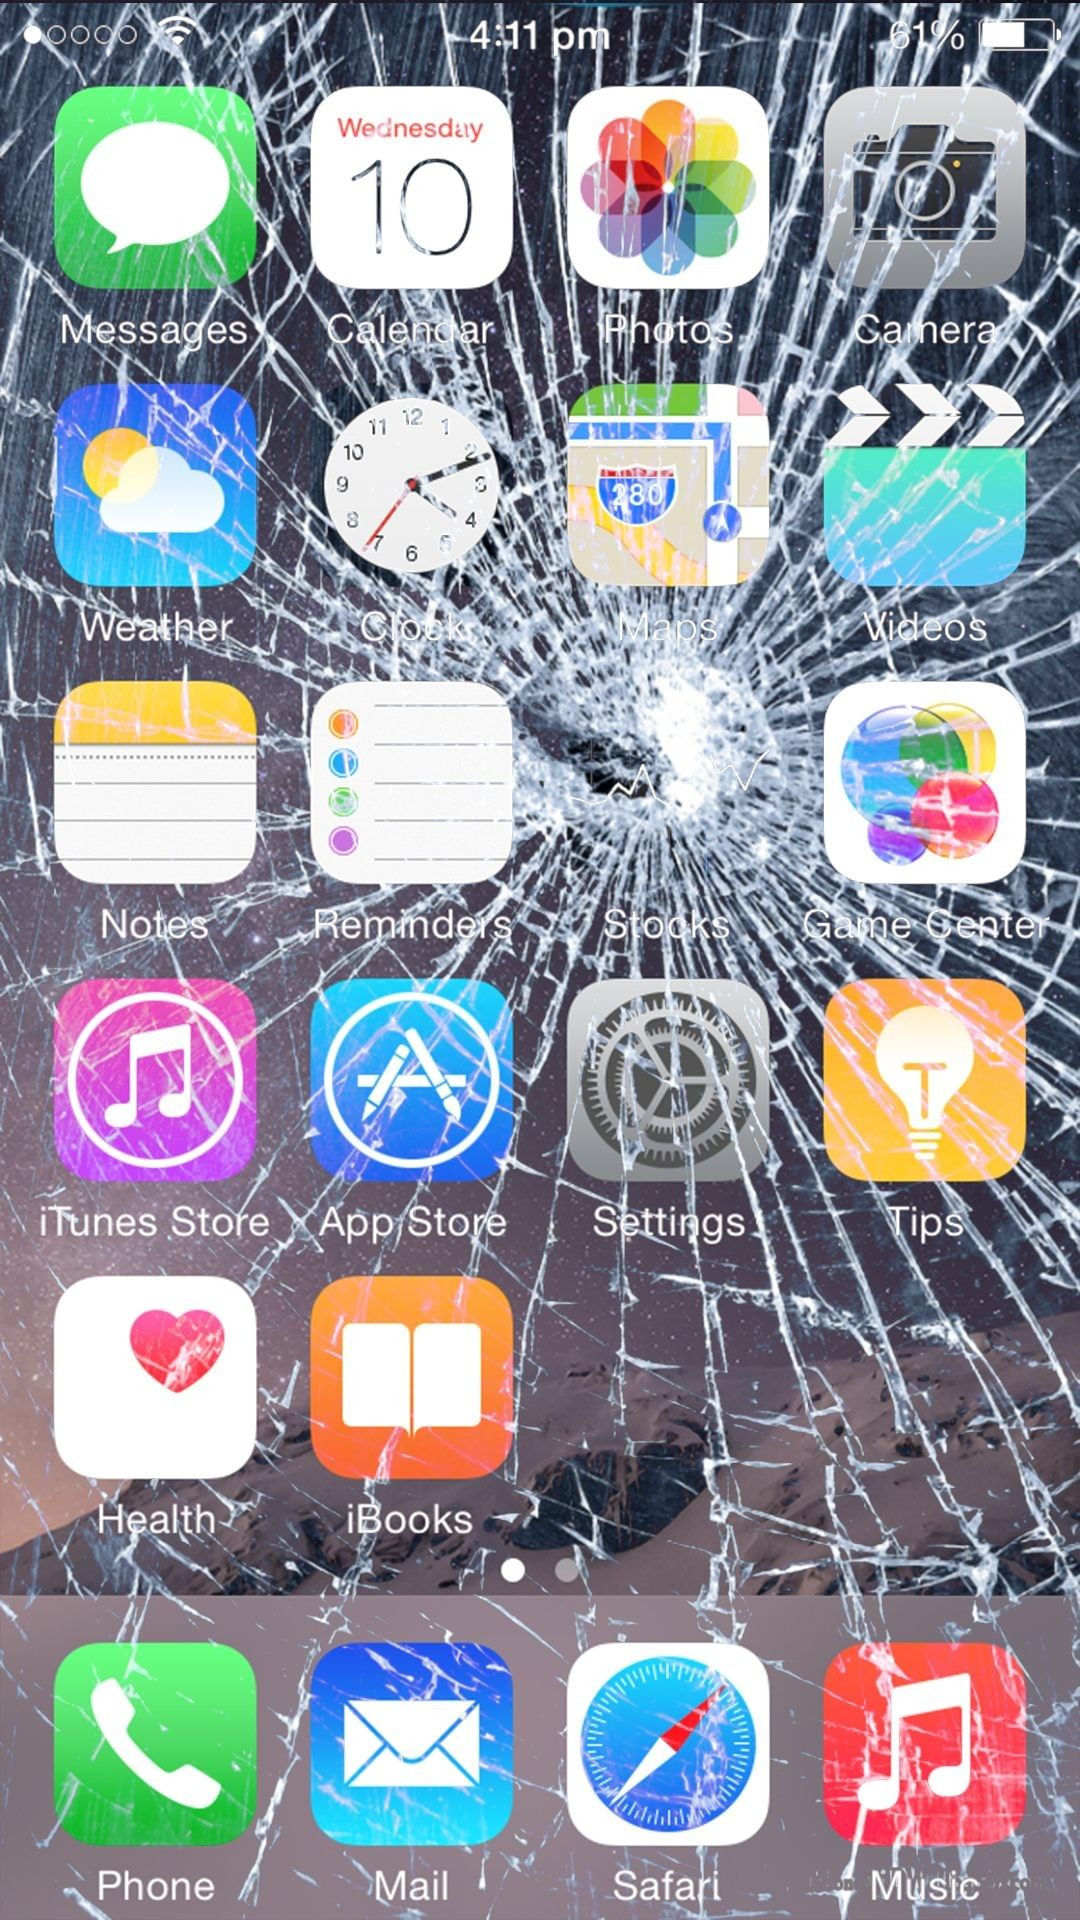 Iphone Se 2020 Live Wallpaper Not Working